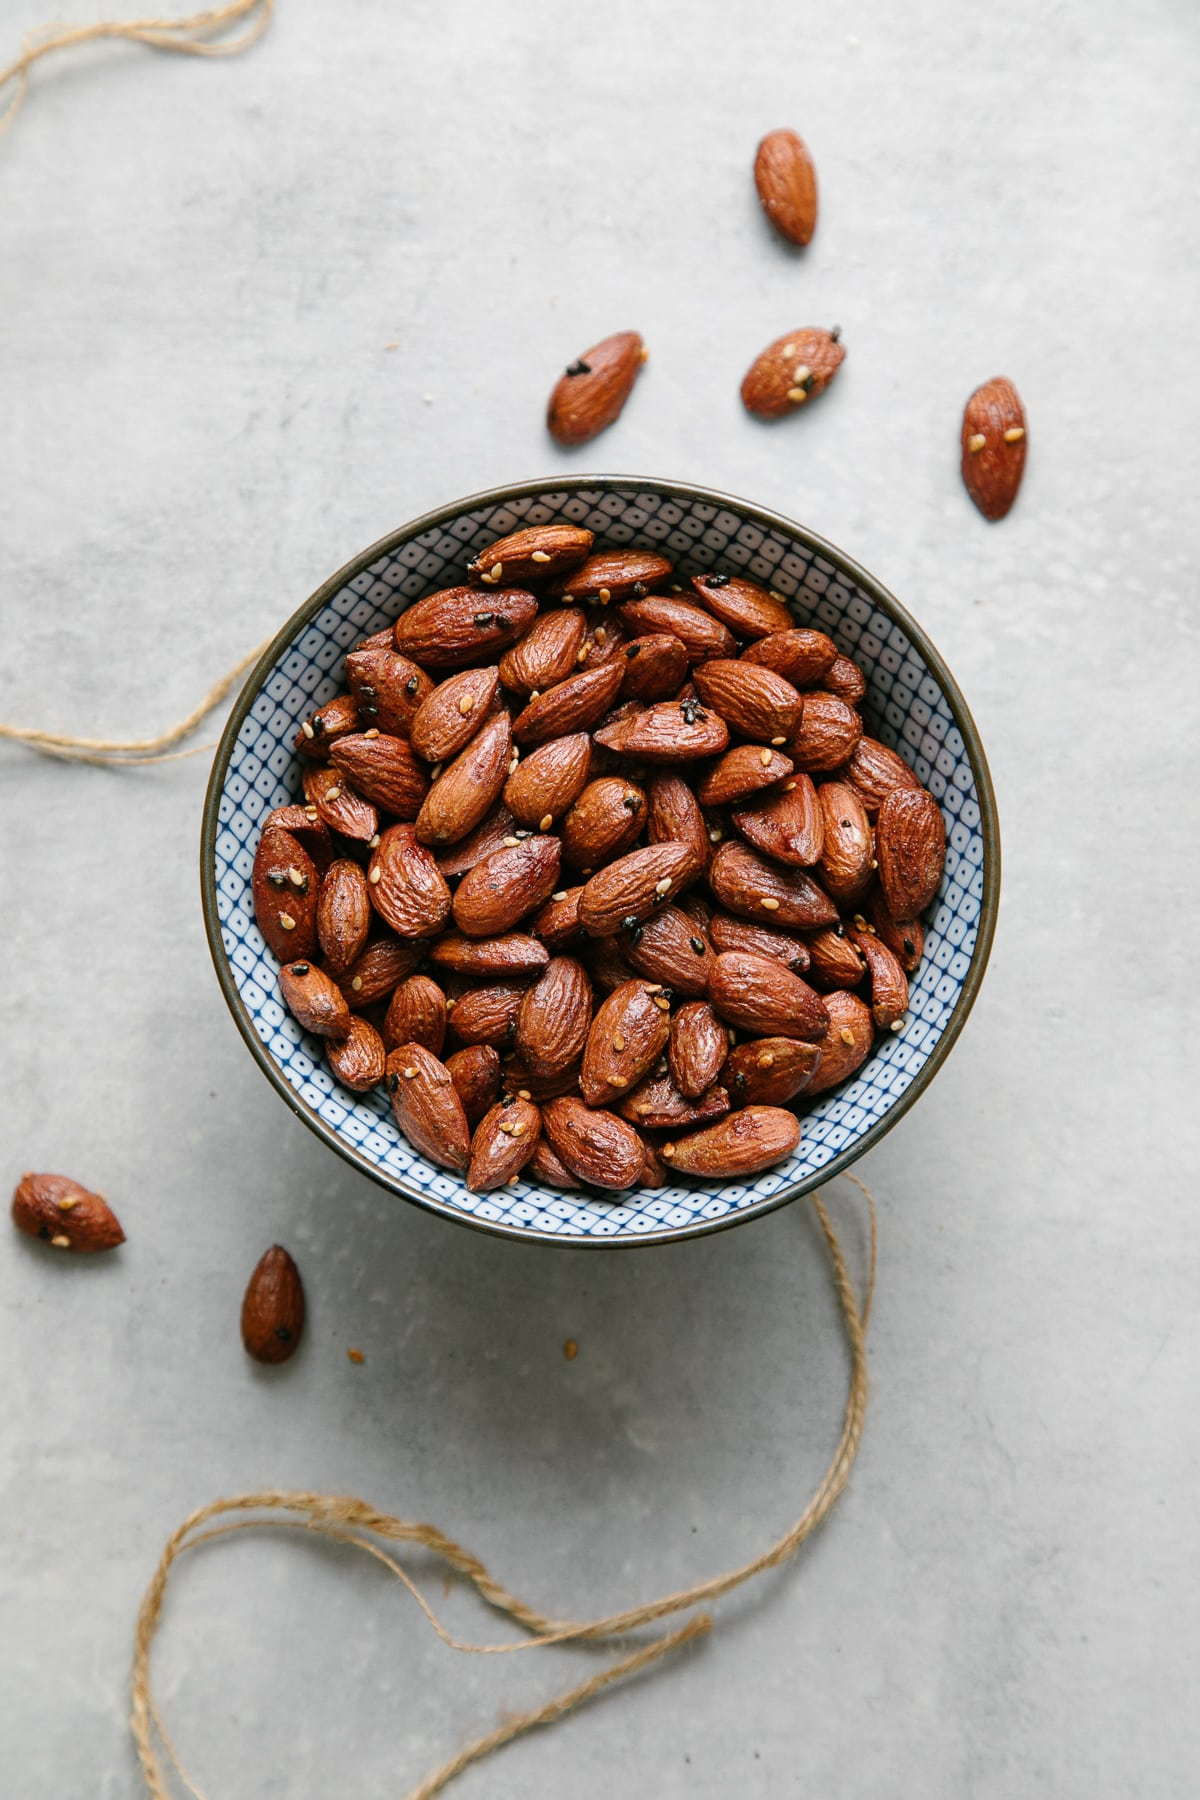 top down view of naturally sweetened roasted almonds in a blue and white bowl.